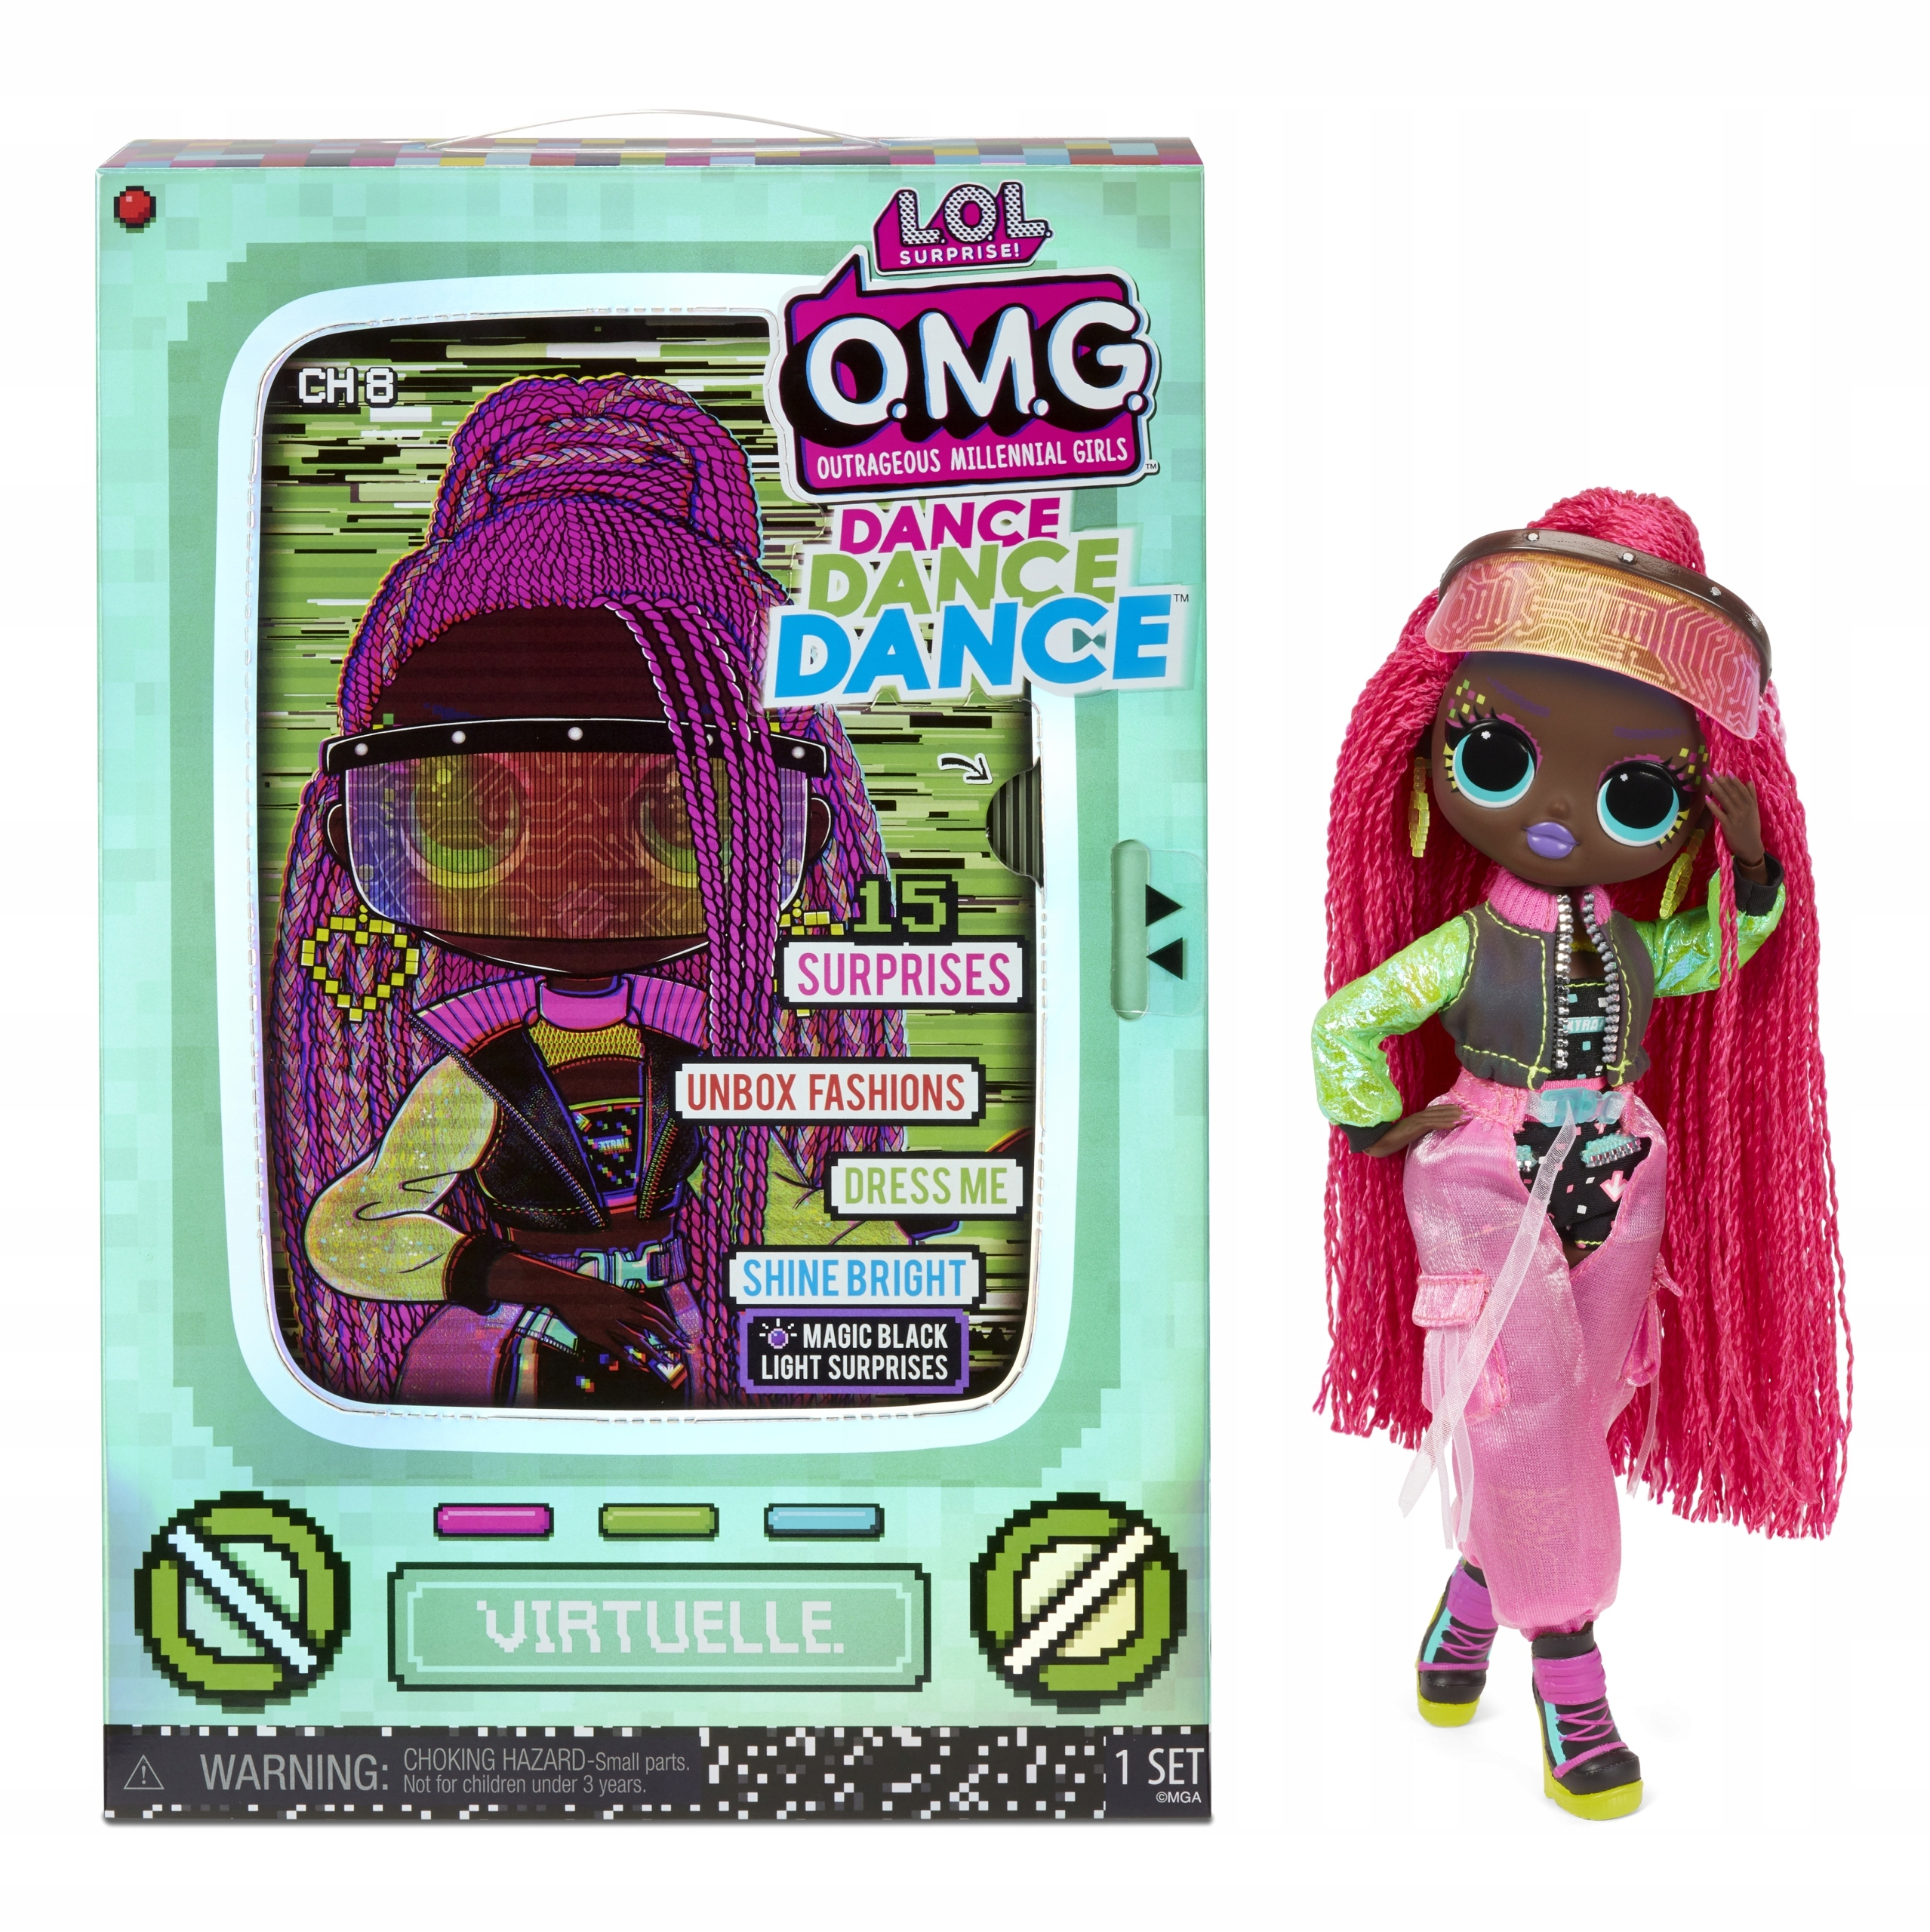 L.O.L. Surprise OMG Dance Doll- Virtuelle 117865